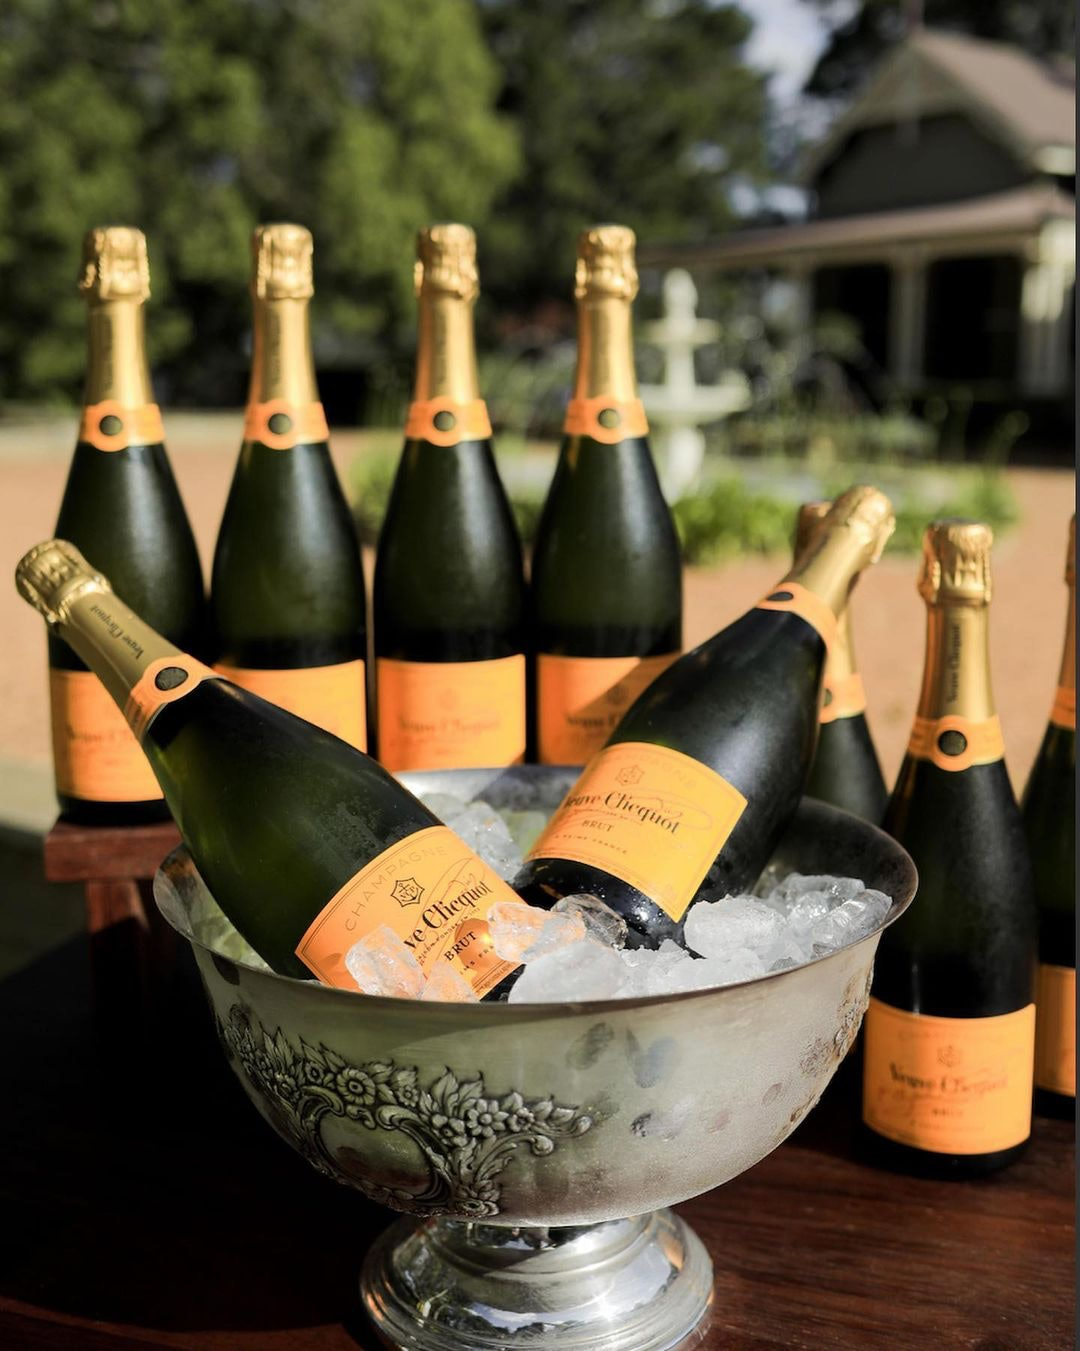 Bottles of champagne in an ice bucket